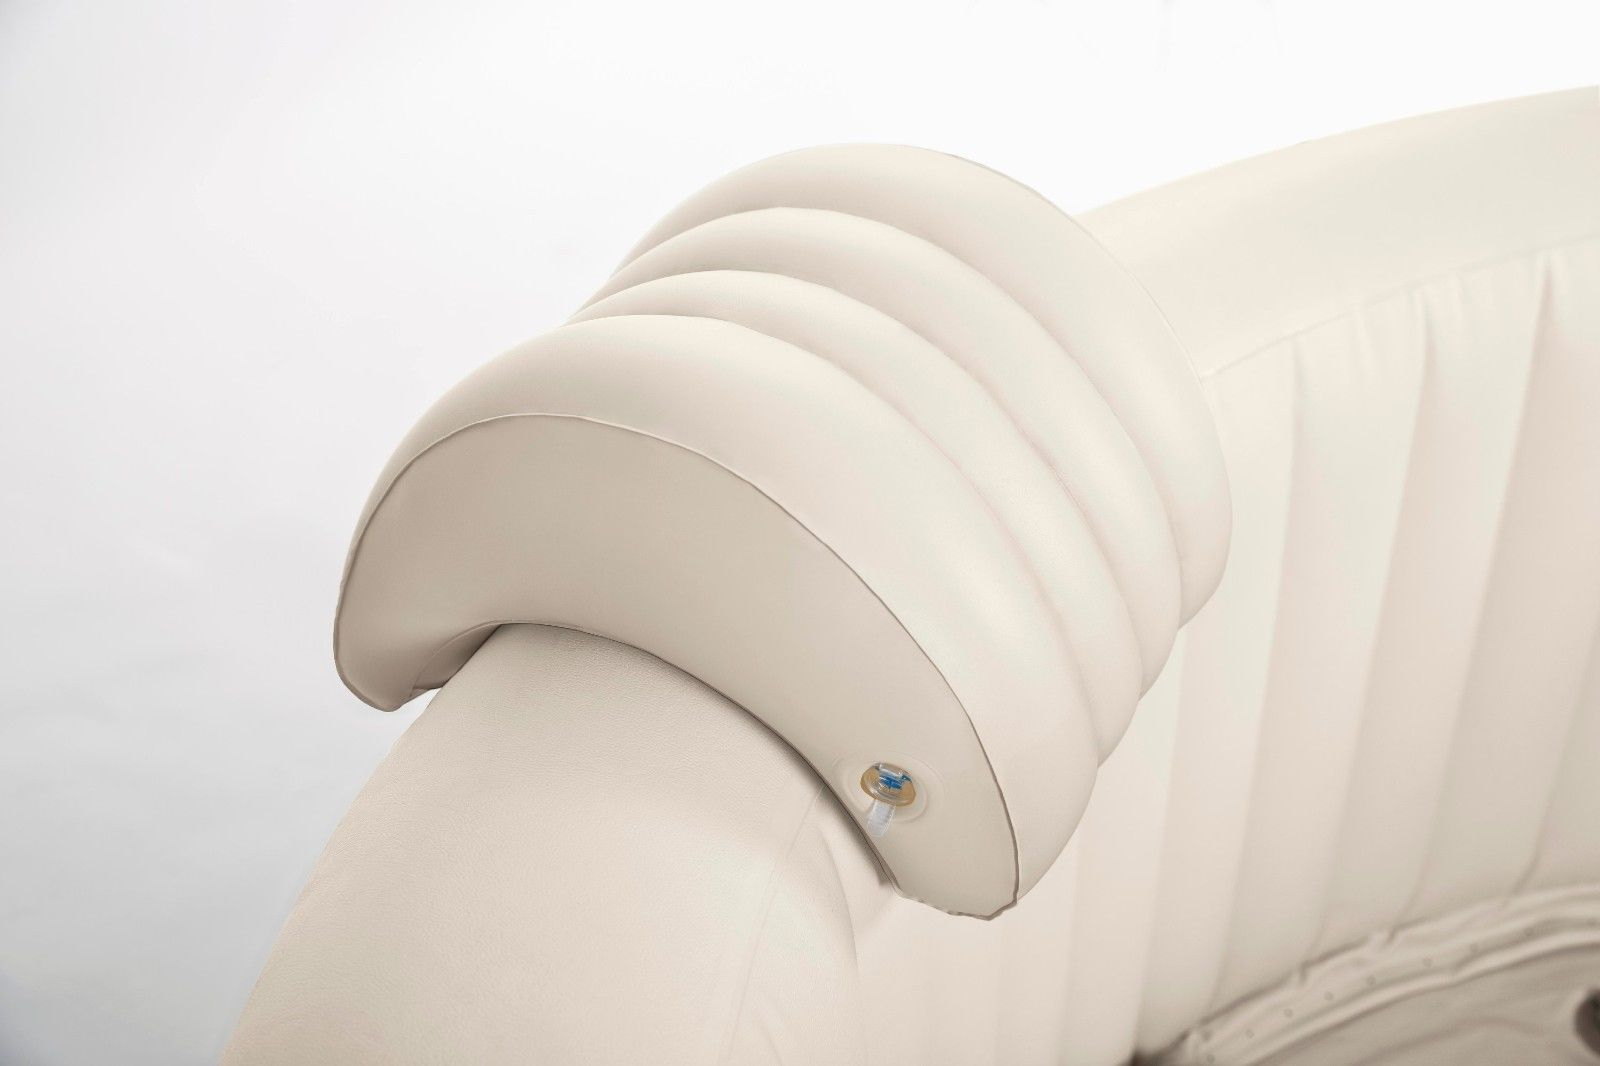 Intex PureSpa Hot Tub Removable Inflatable Headrest Accessory ...